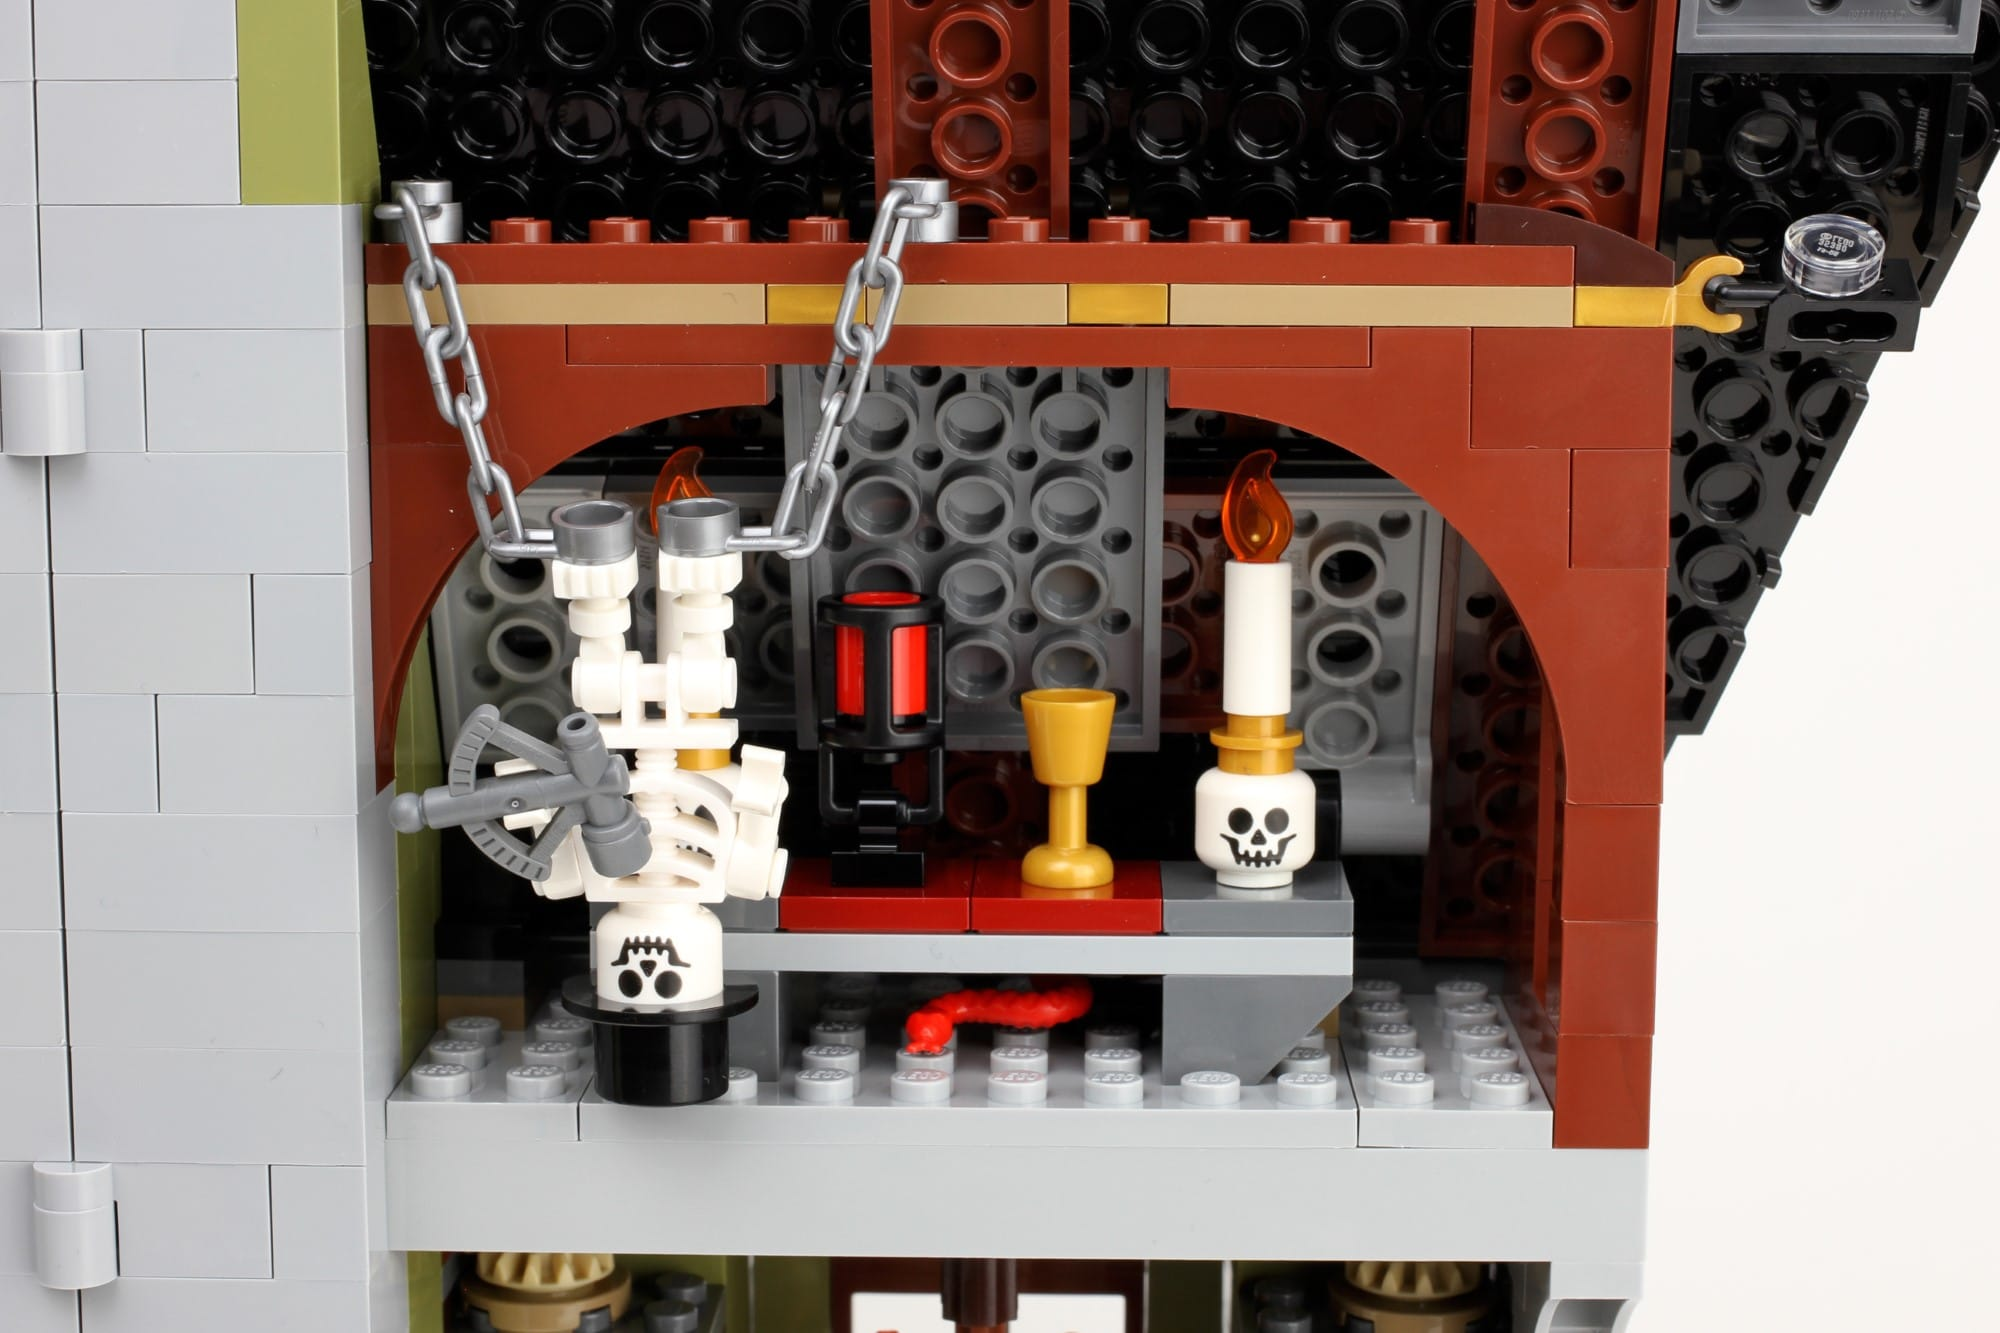 LEGO Fairground Collection 10273 Haunted House Aufbau Schritt 12 Detail 43